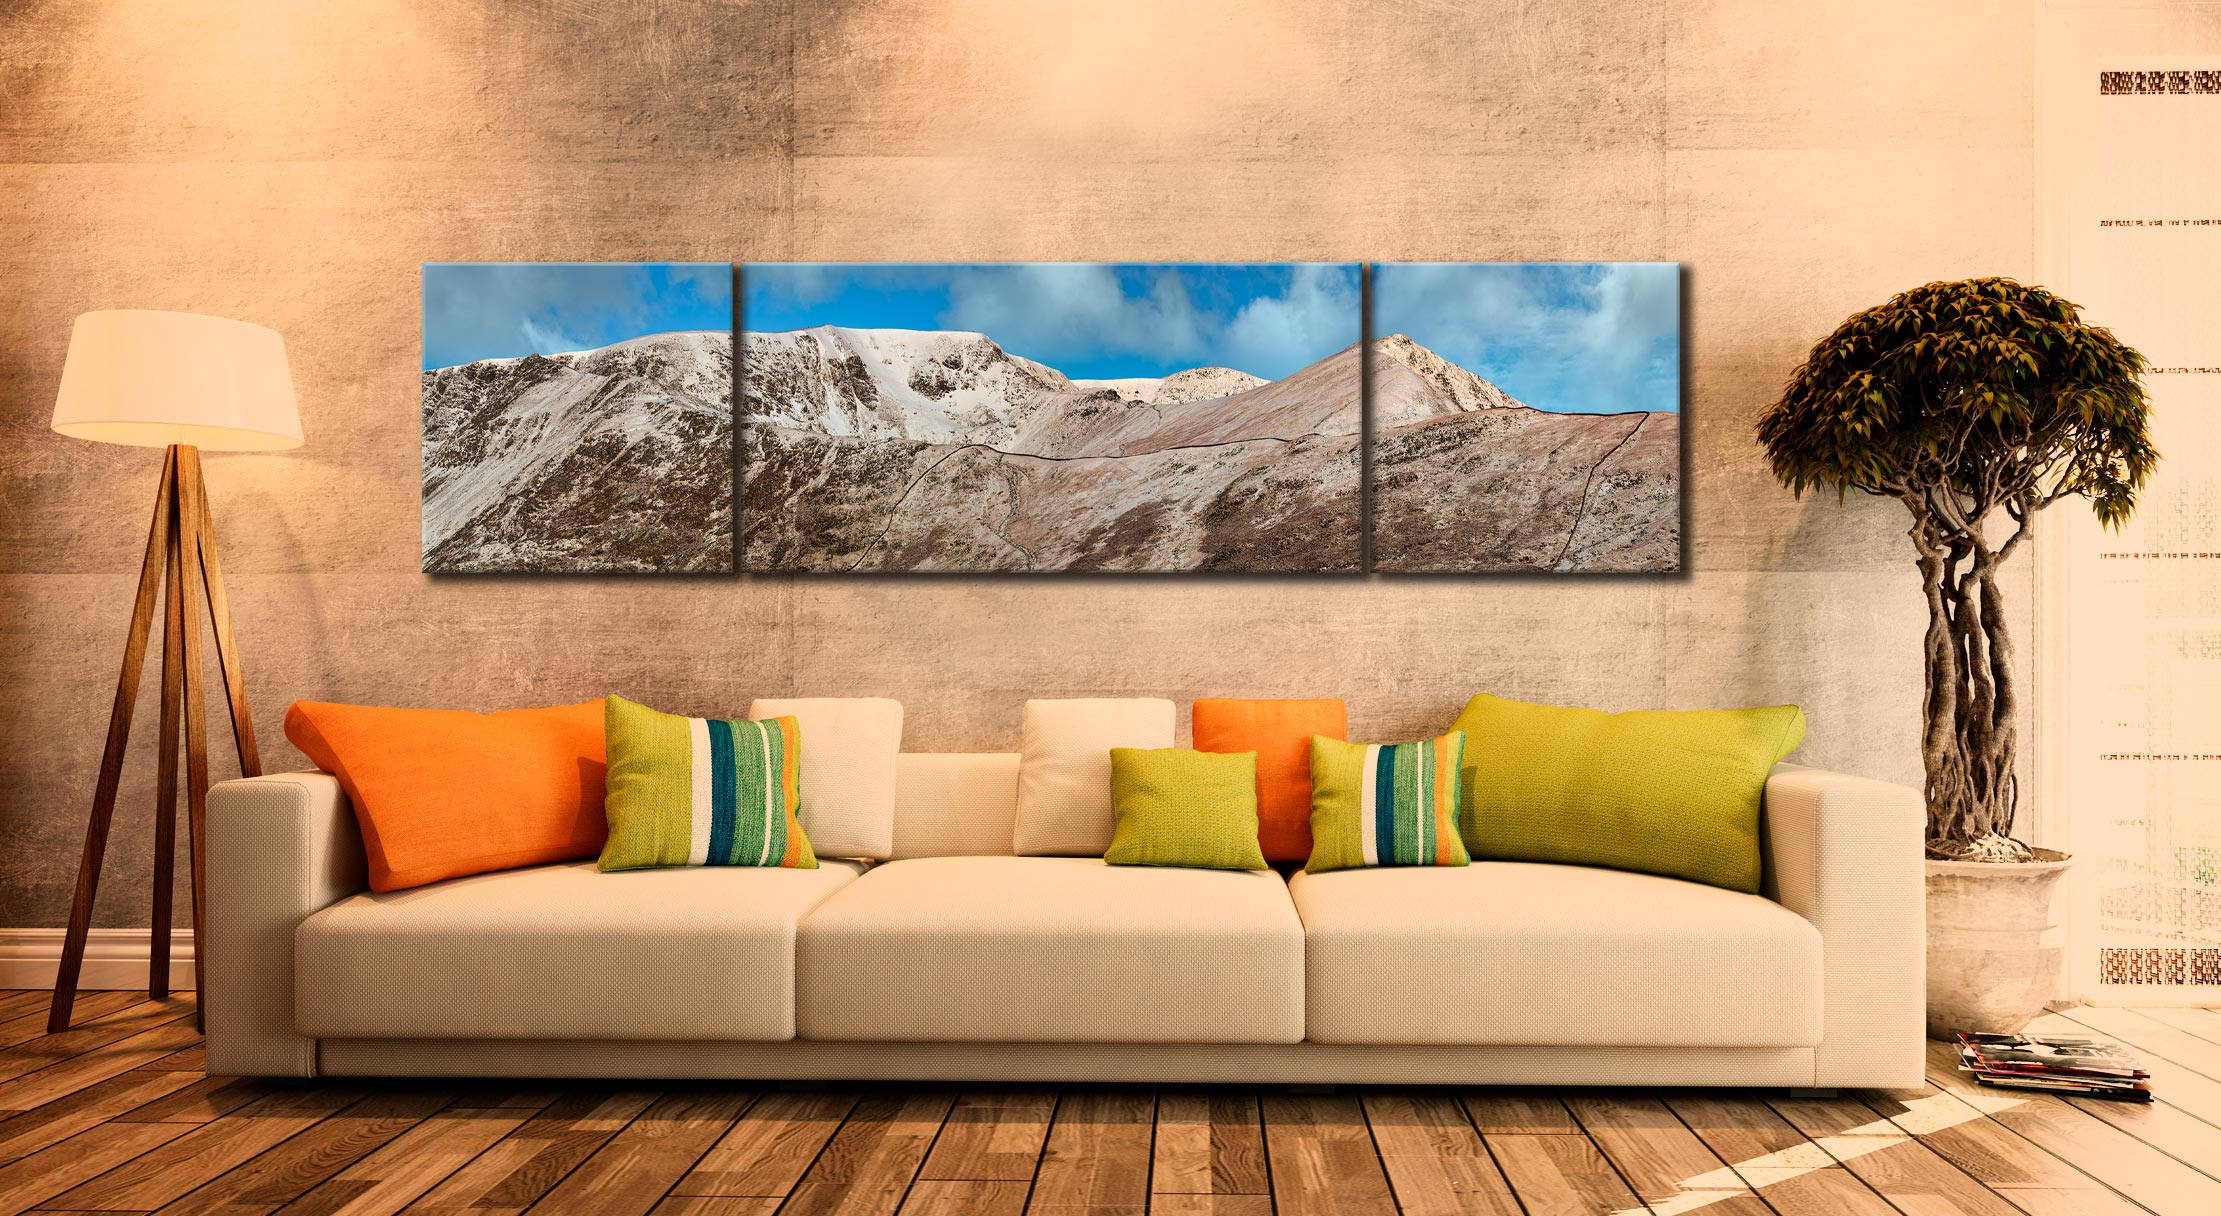 Snow Capped Helvellyn Mountains - 3 Panel Wide Centre Canvas on Wall